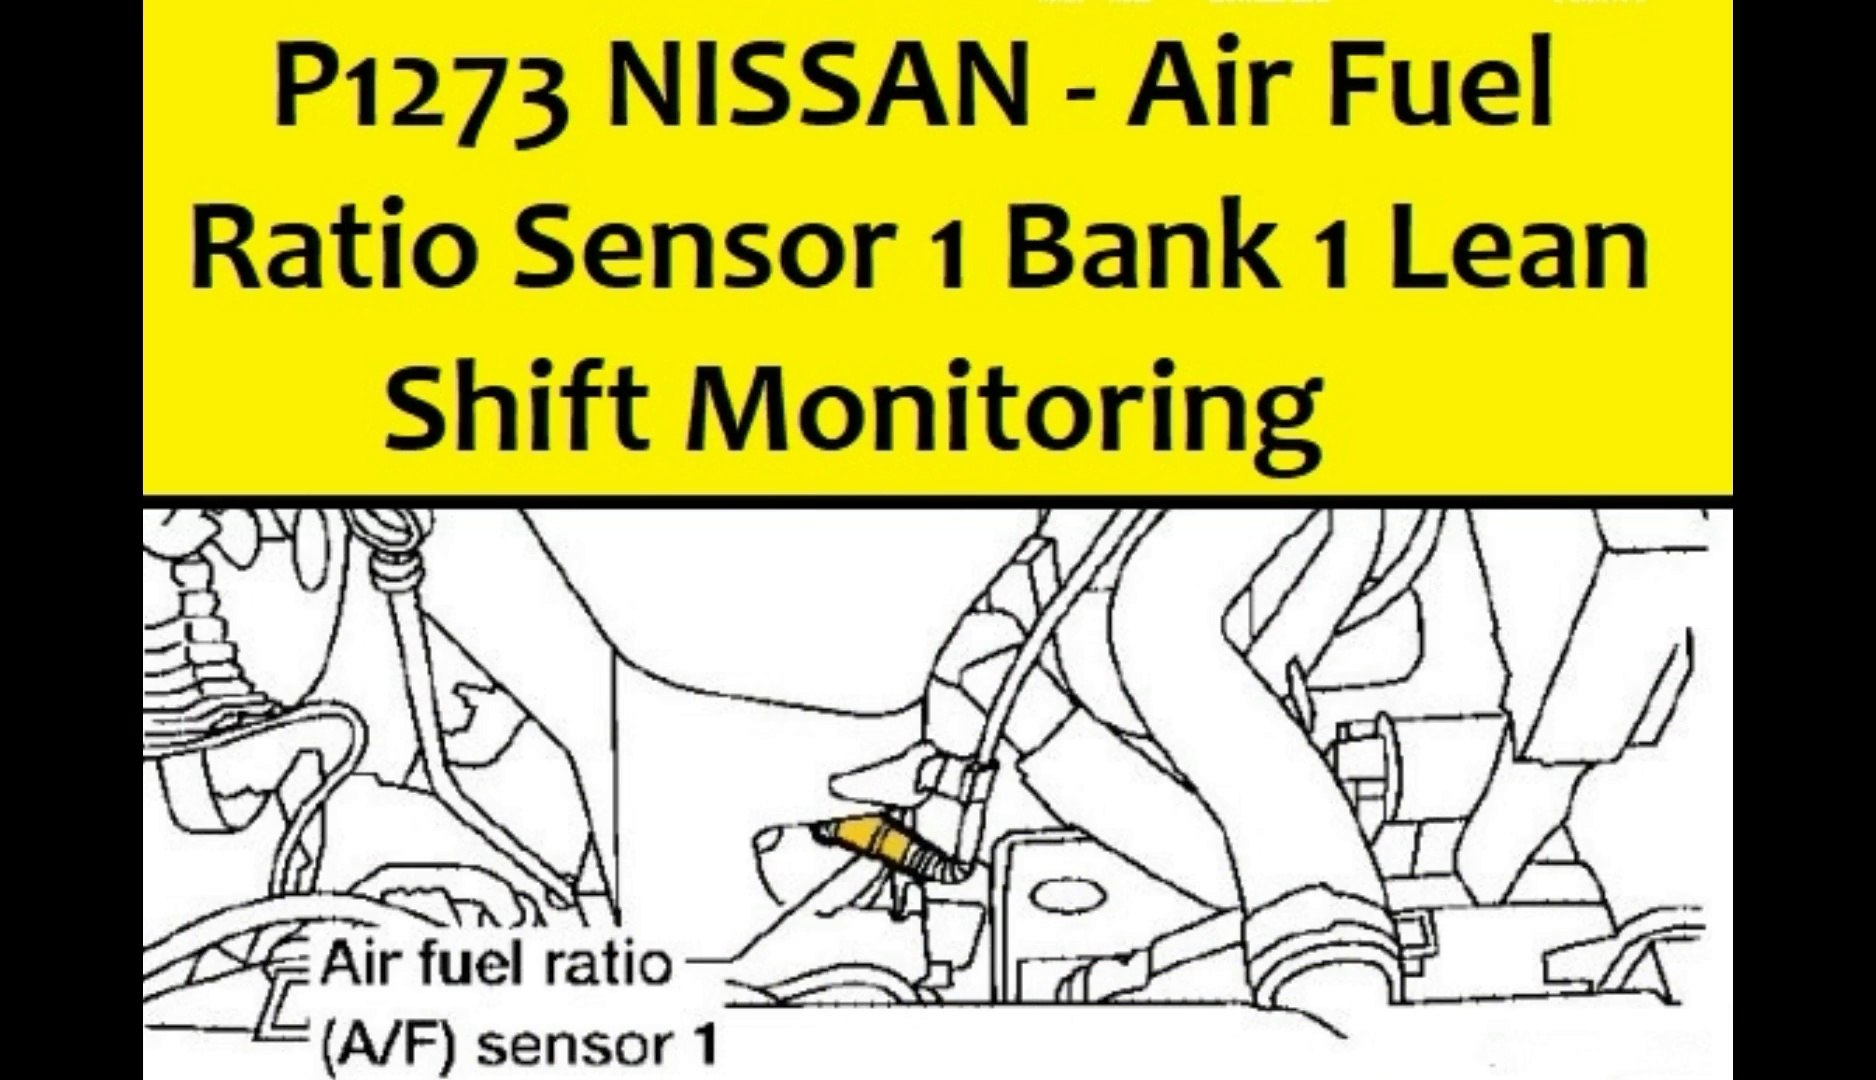 P1273 NISSAN - Air Fuel Ratio Sensor 1 Bank 1 Lean Shift Monitoring